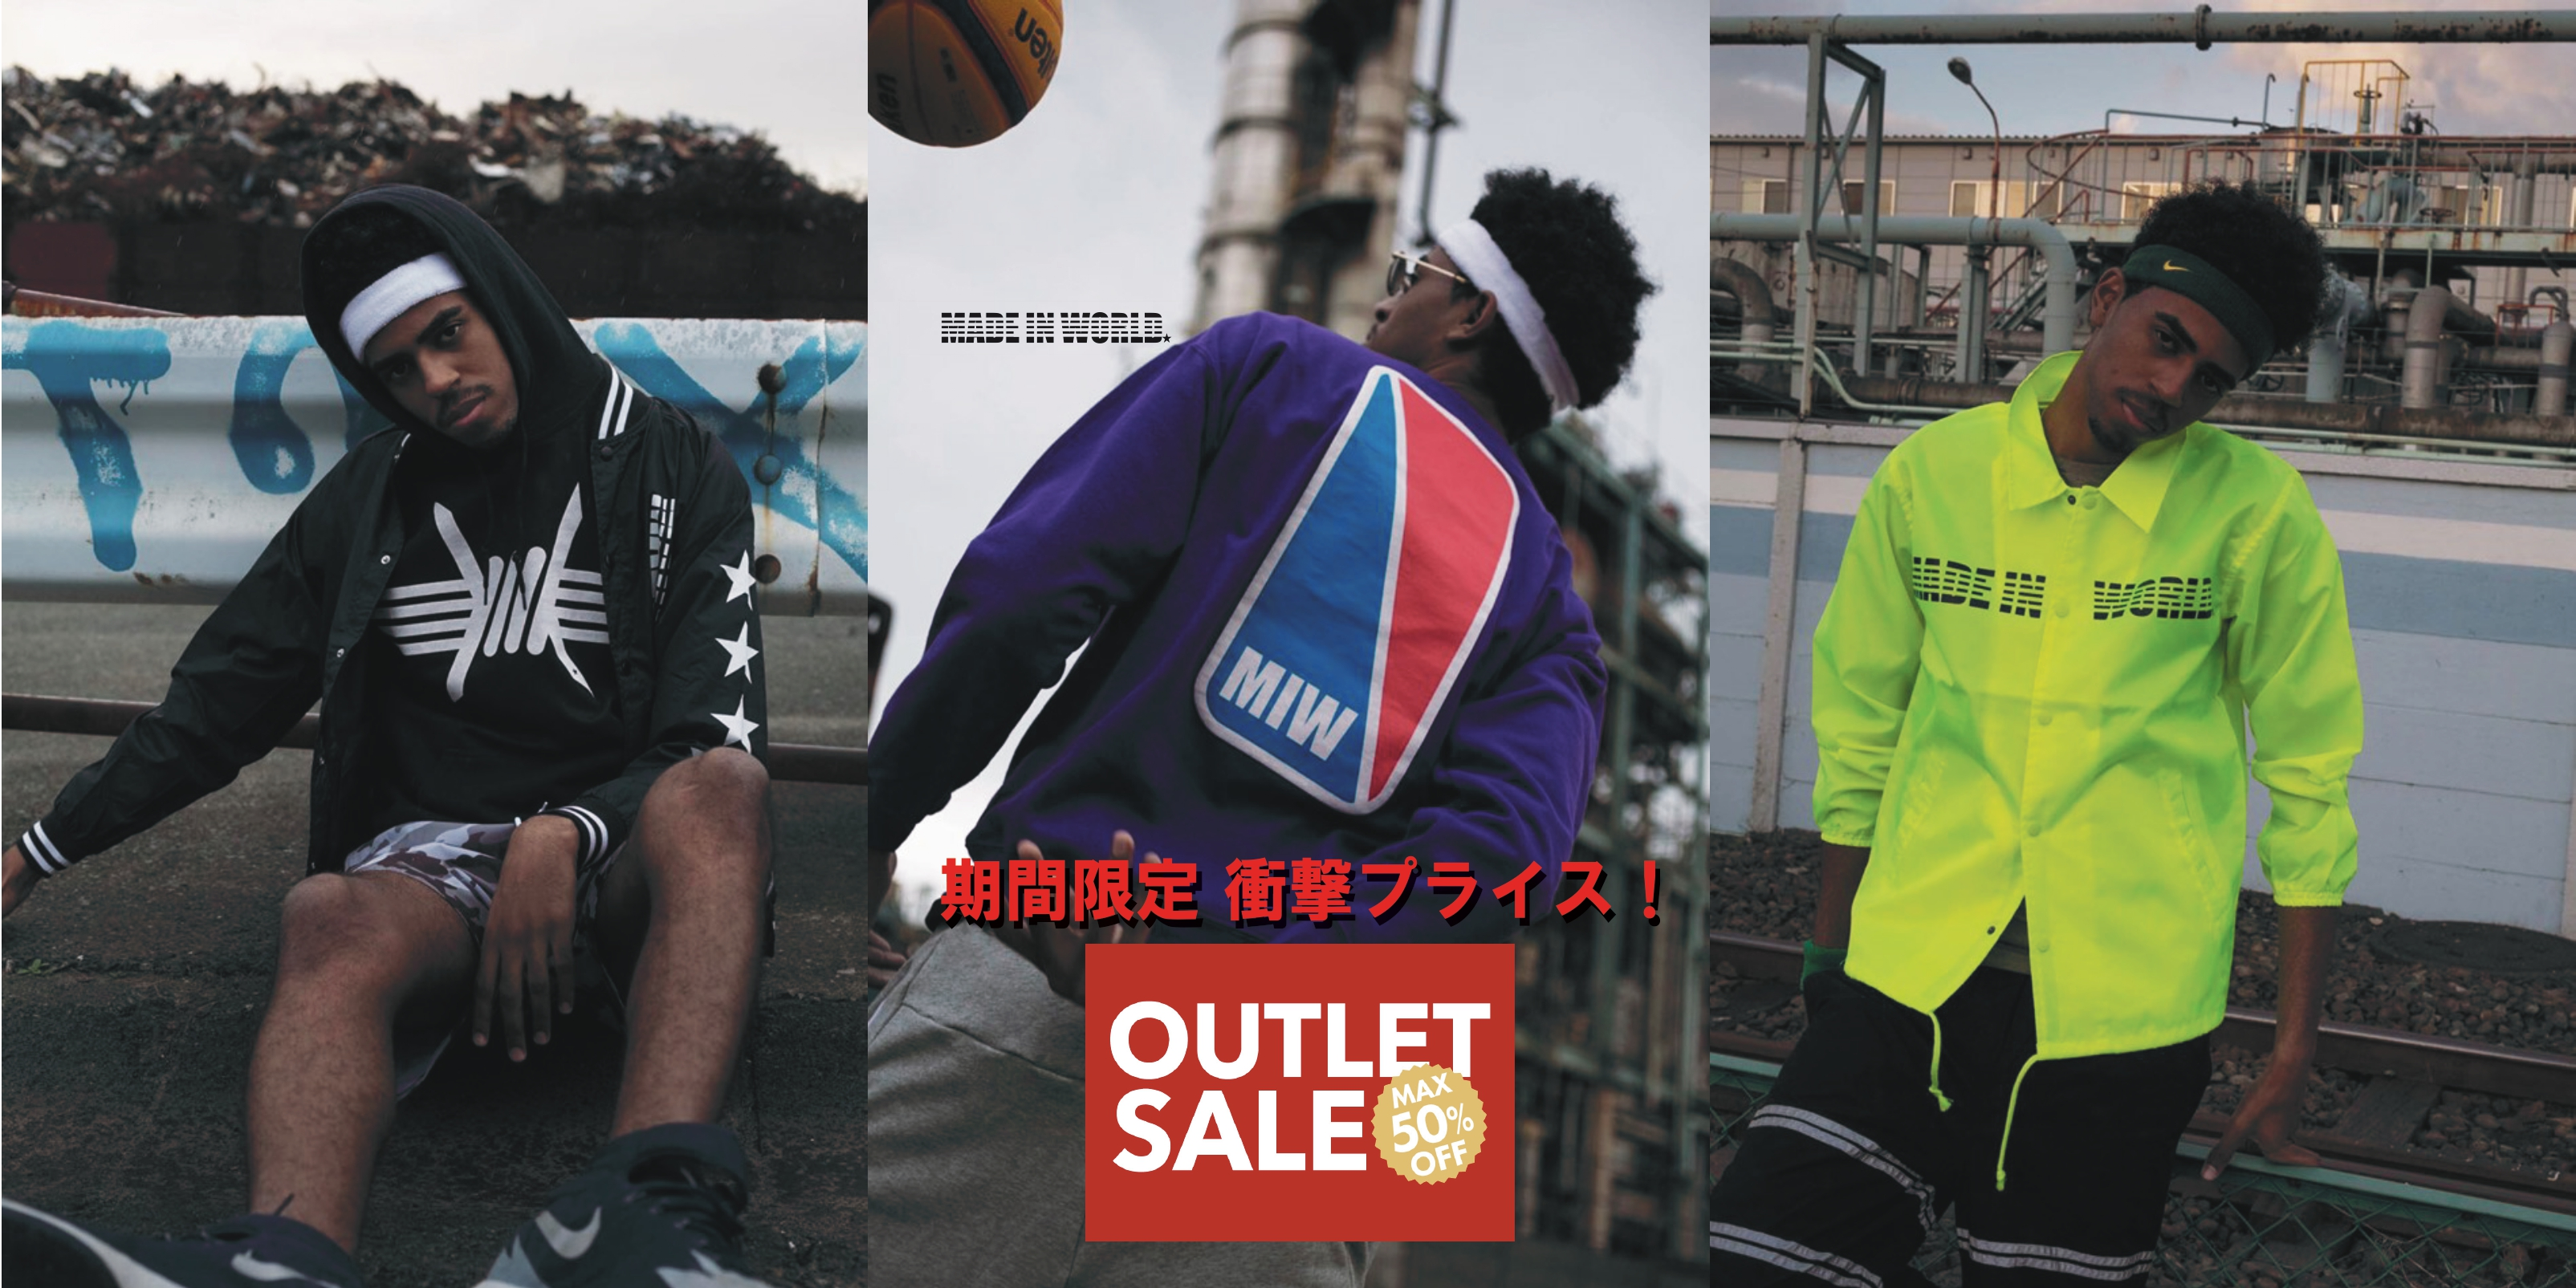 OUTLET SALE アウトレット